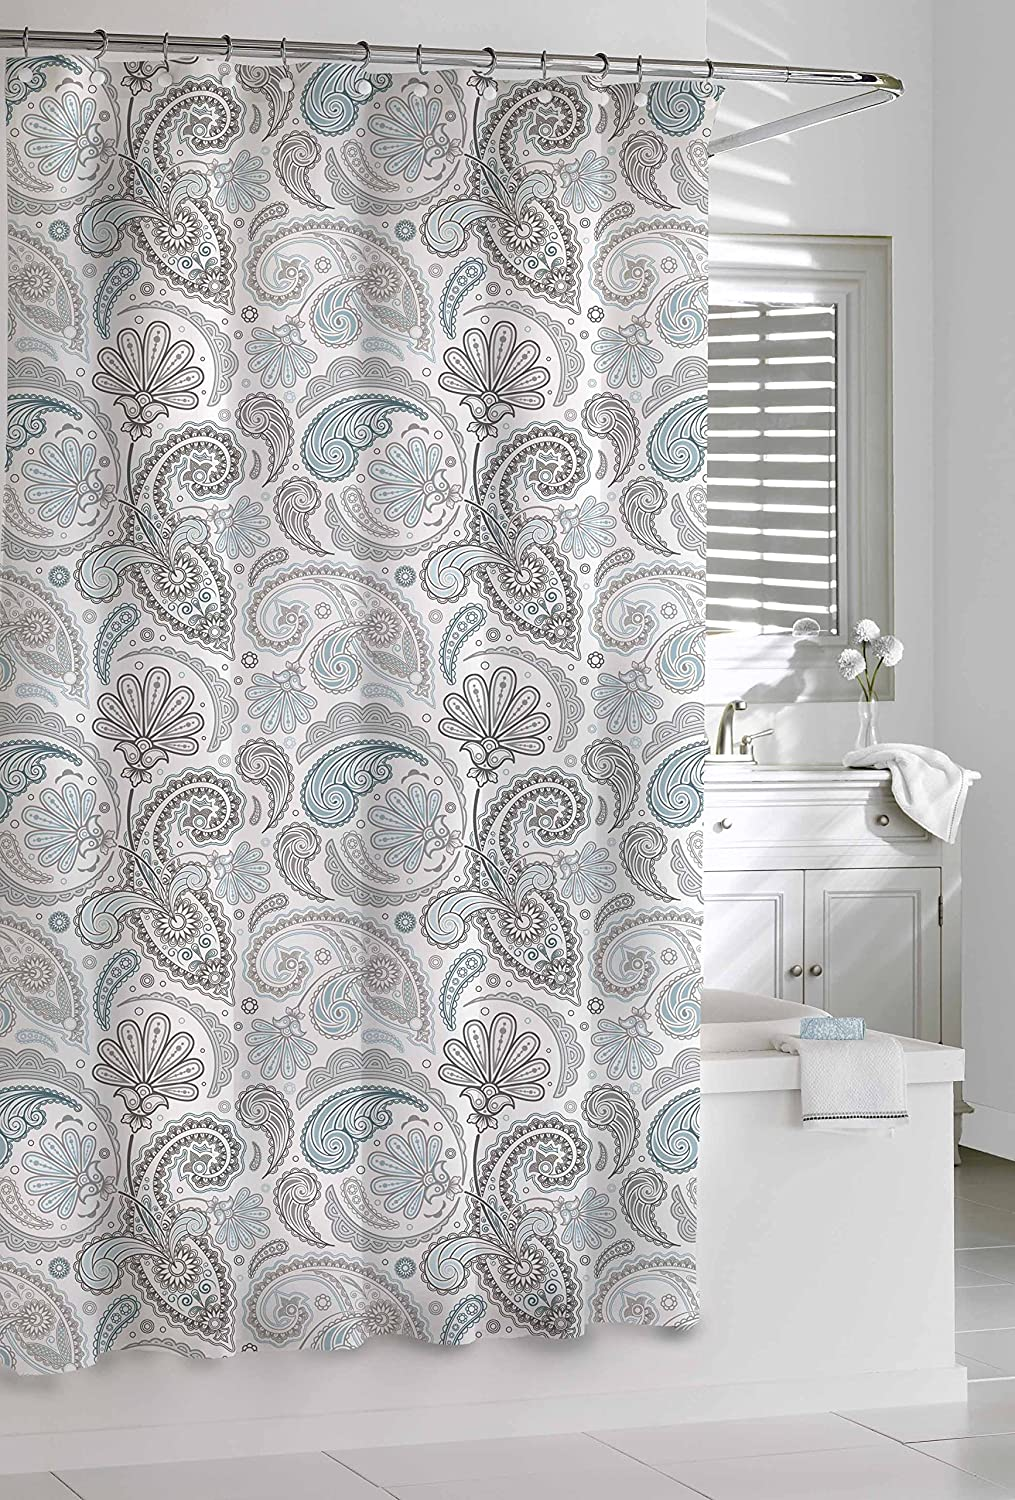 Amazon.com: Kassatex Paisley Shower Curtain, Blue/Grey, 72 by 72 ...